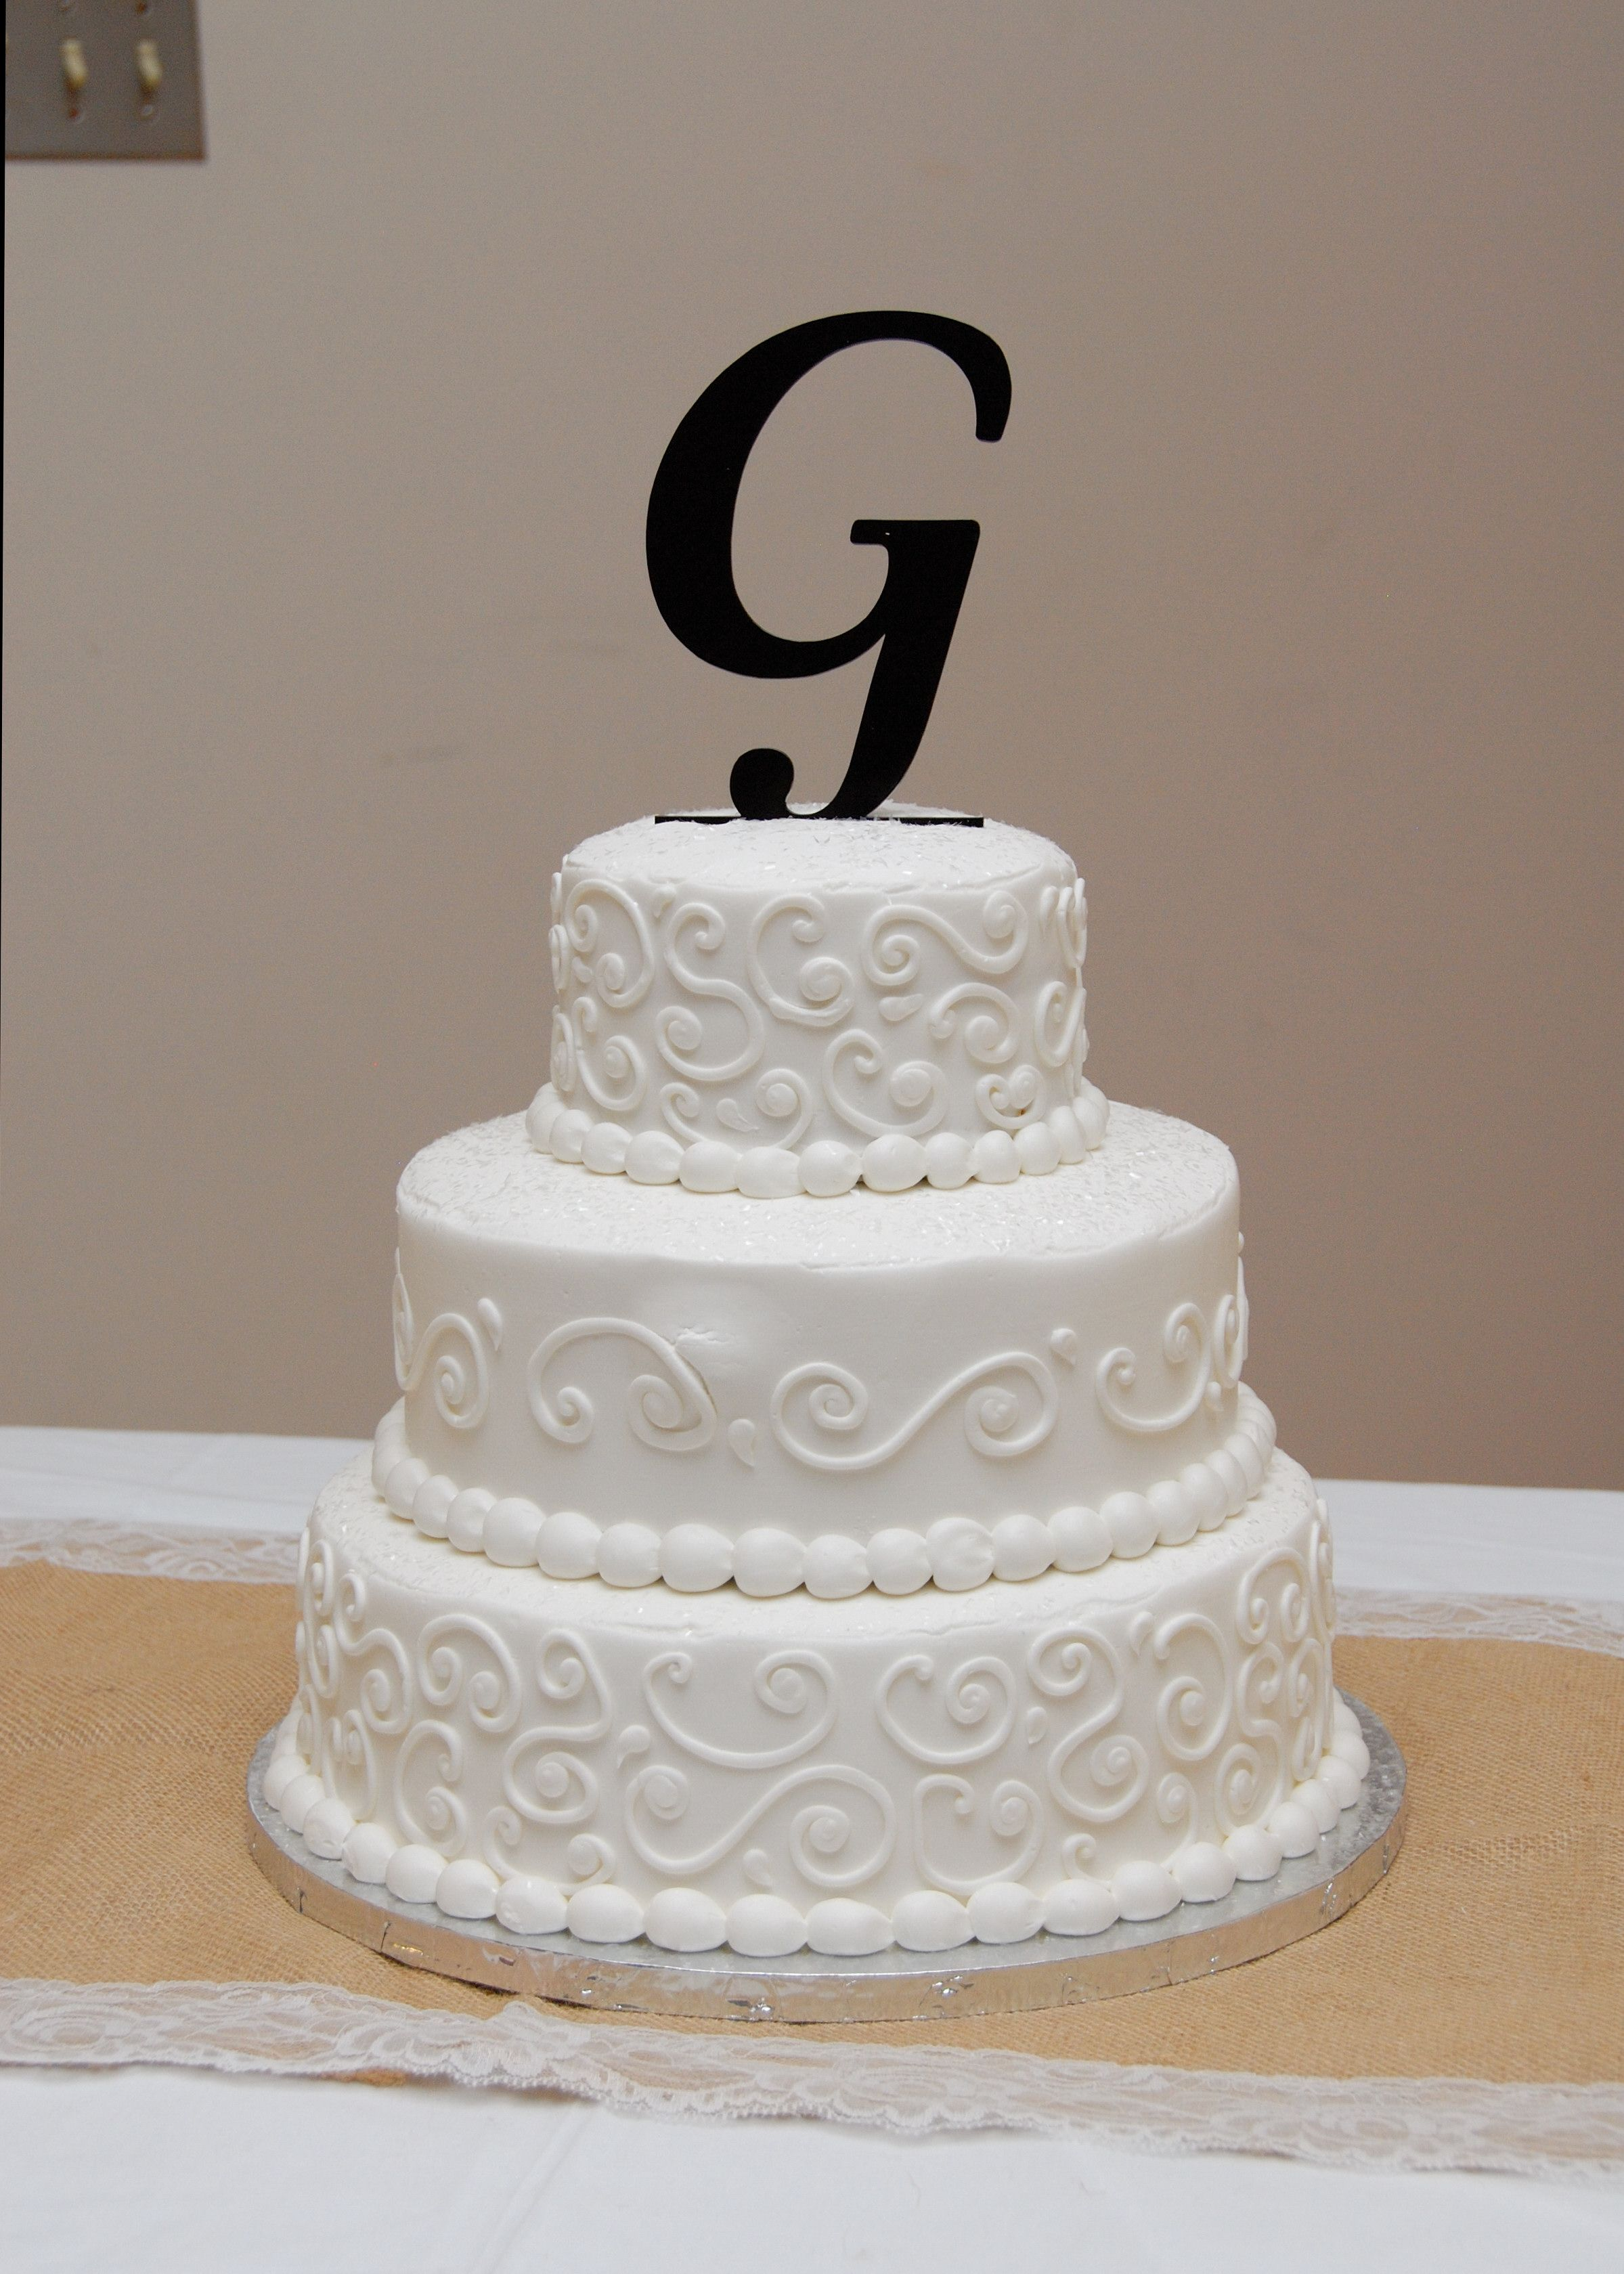 My wedding cake, made at Walmart, was almost hesitant to